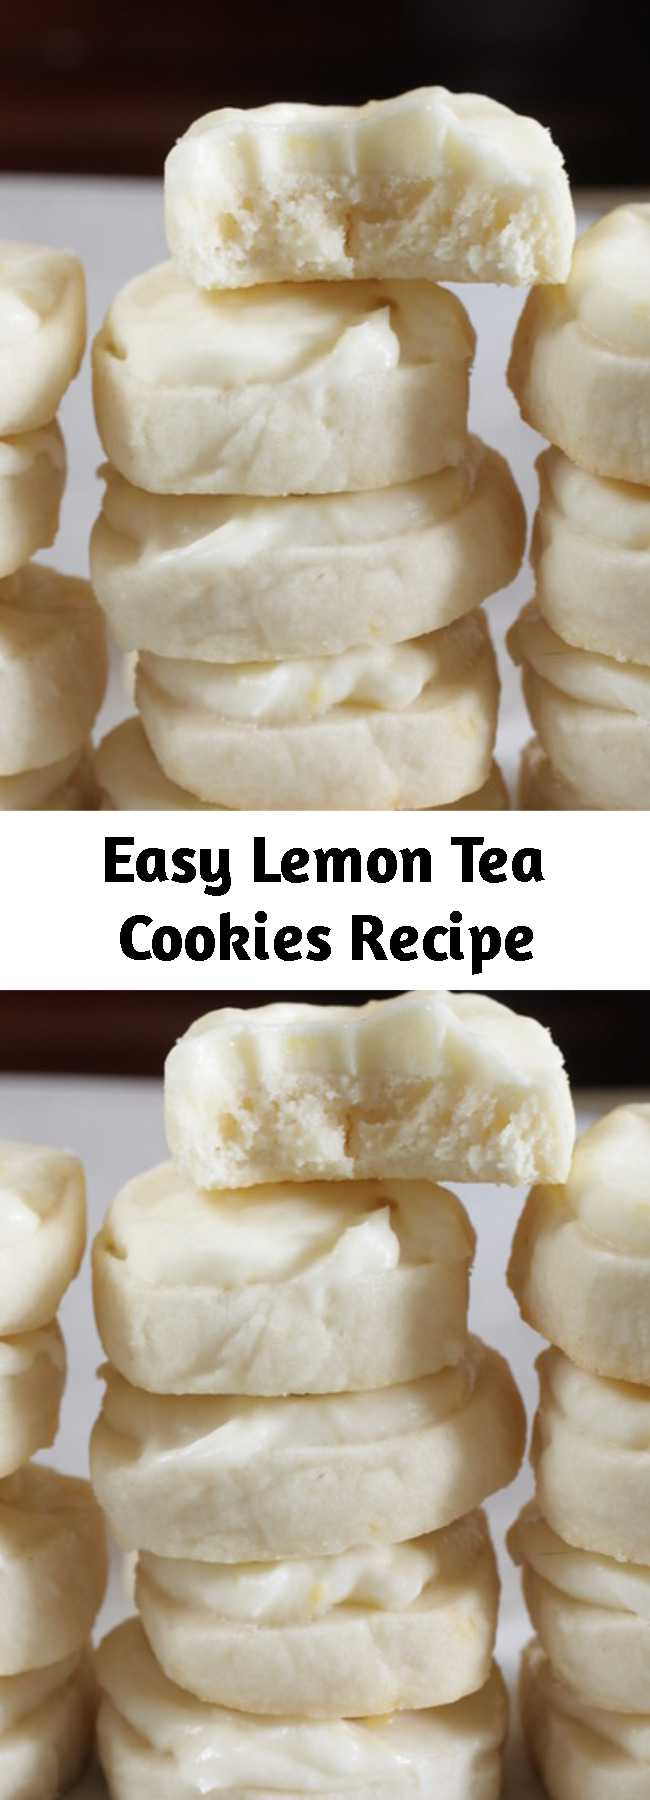 Easy Lemon Tea Cookies Recipe - My mom makes these at Christmas time and they are super addicting. Light but sweet and tangy. They're a nice addition to a holiday cookie platter. Bite-sized and refreshing, they are the perfect little treat with a cup of hot tea. Even better yet, they are a slice-and-bake cookie, so there's no rolling of dough, and you can bake them off as you like. For an alternative to frosting, simply toss baked cookies in confectioners' sugar.